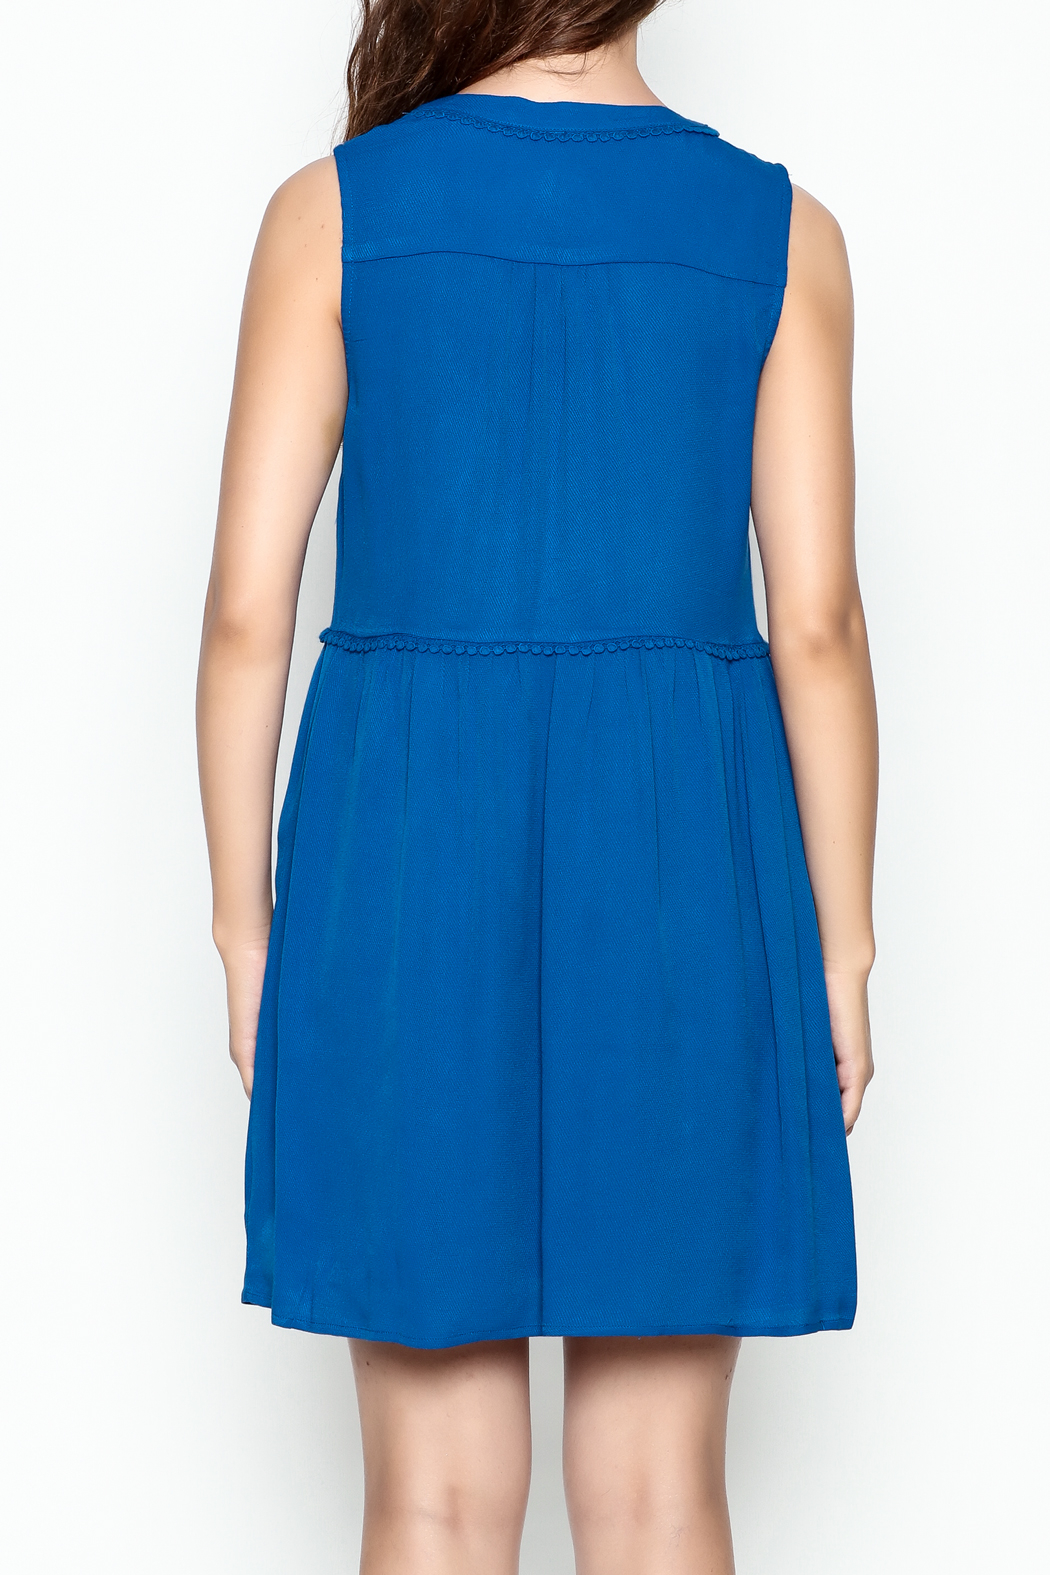 Skies Are Blue Blue Button Up Dress - Back Cropped Image